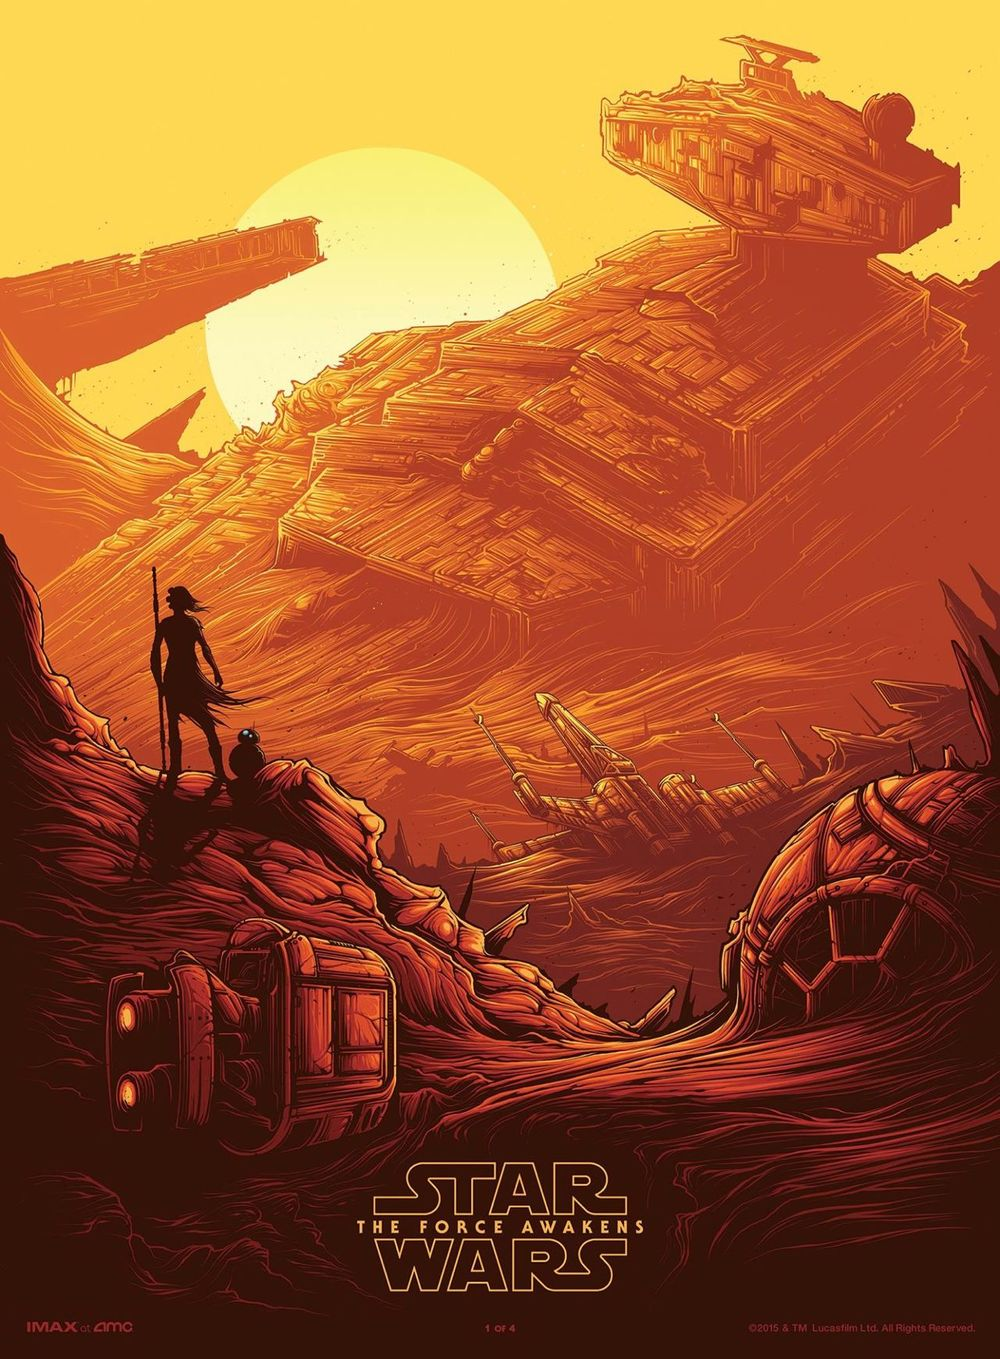 amc-exclusive-poster-for-star-wars-the-force-awakens-revealed